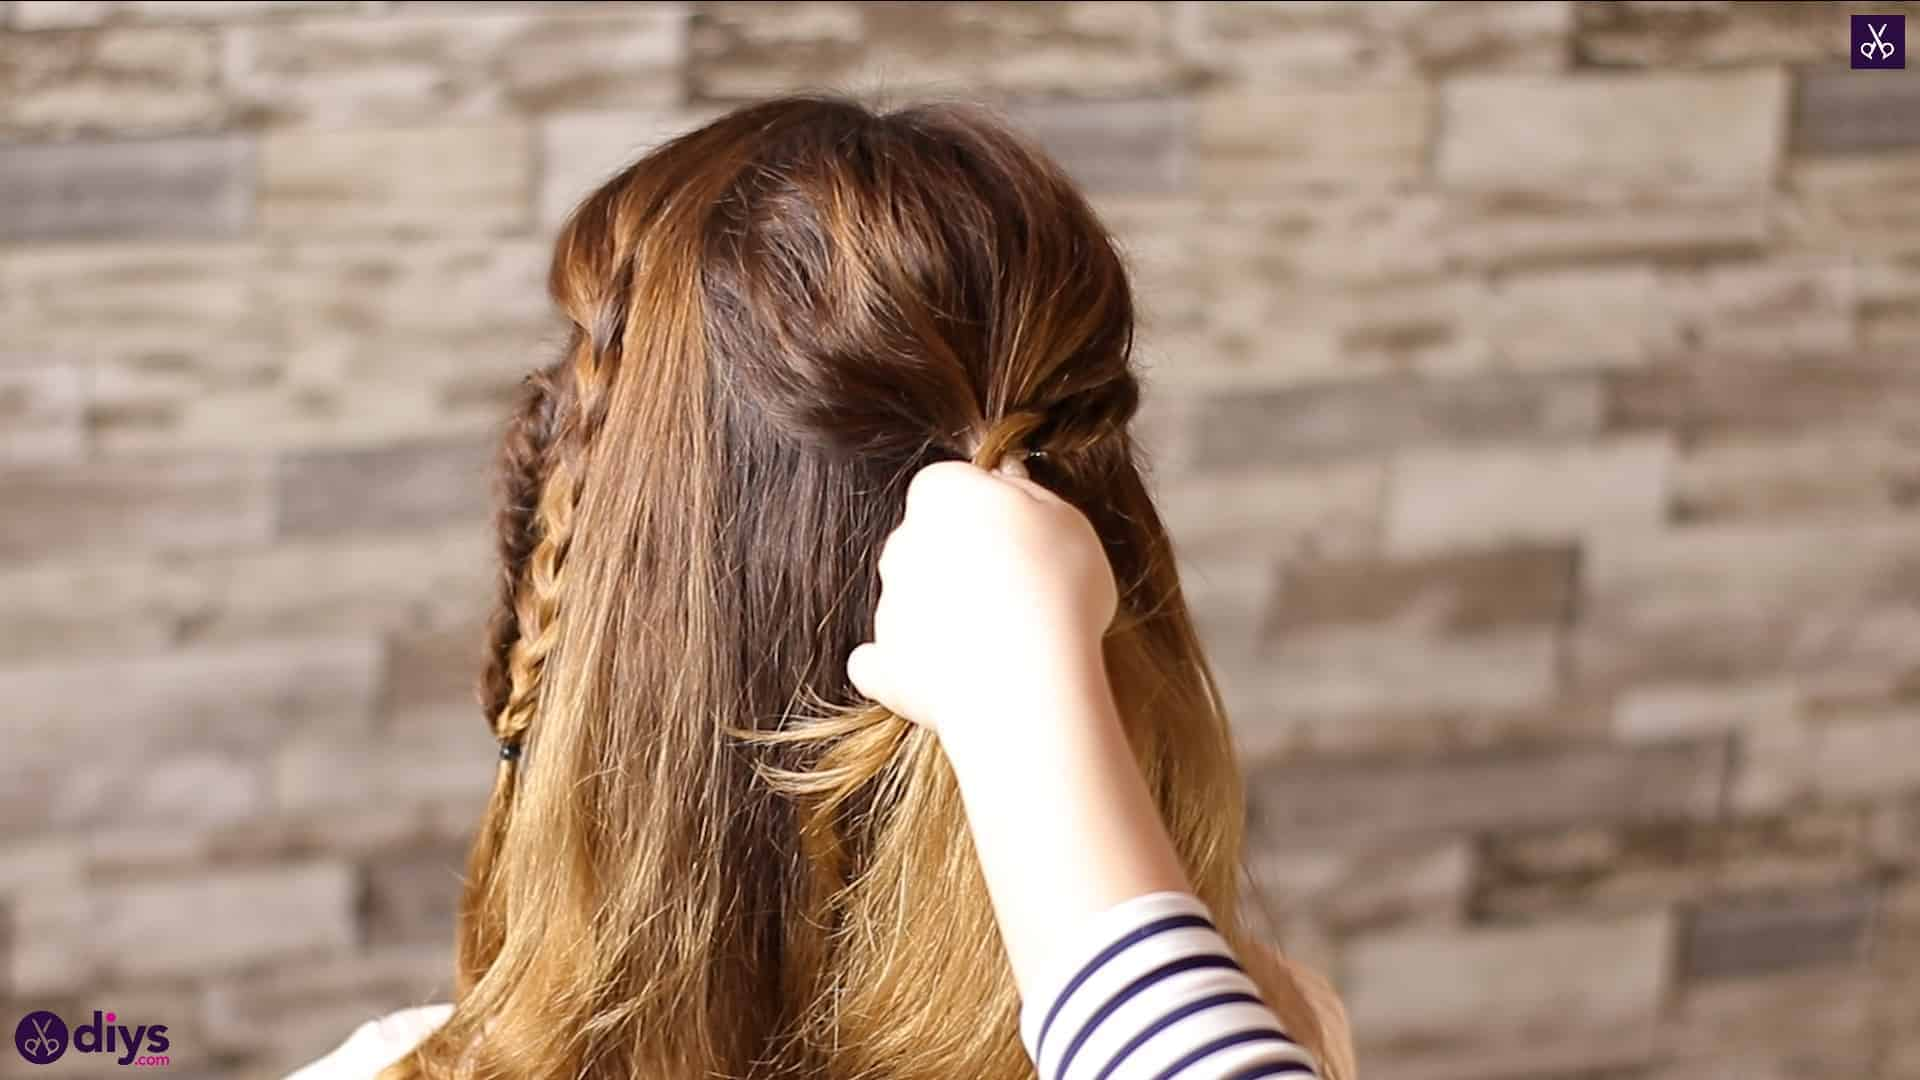 Half up, half down hairstyle for spring46